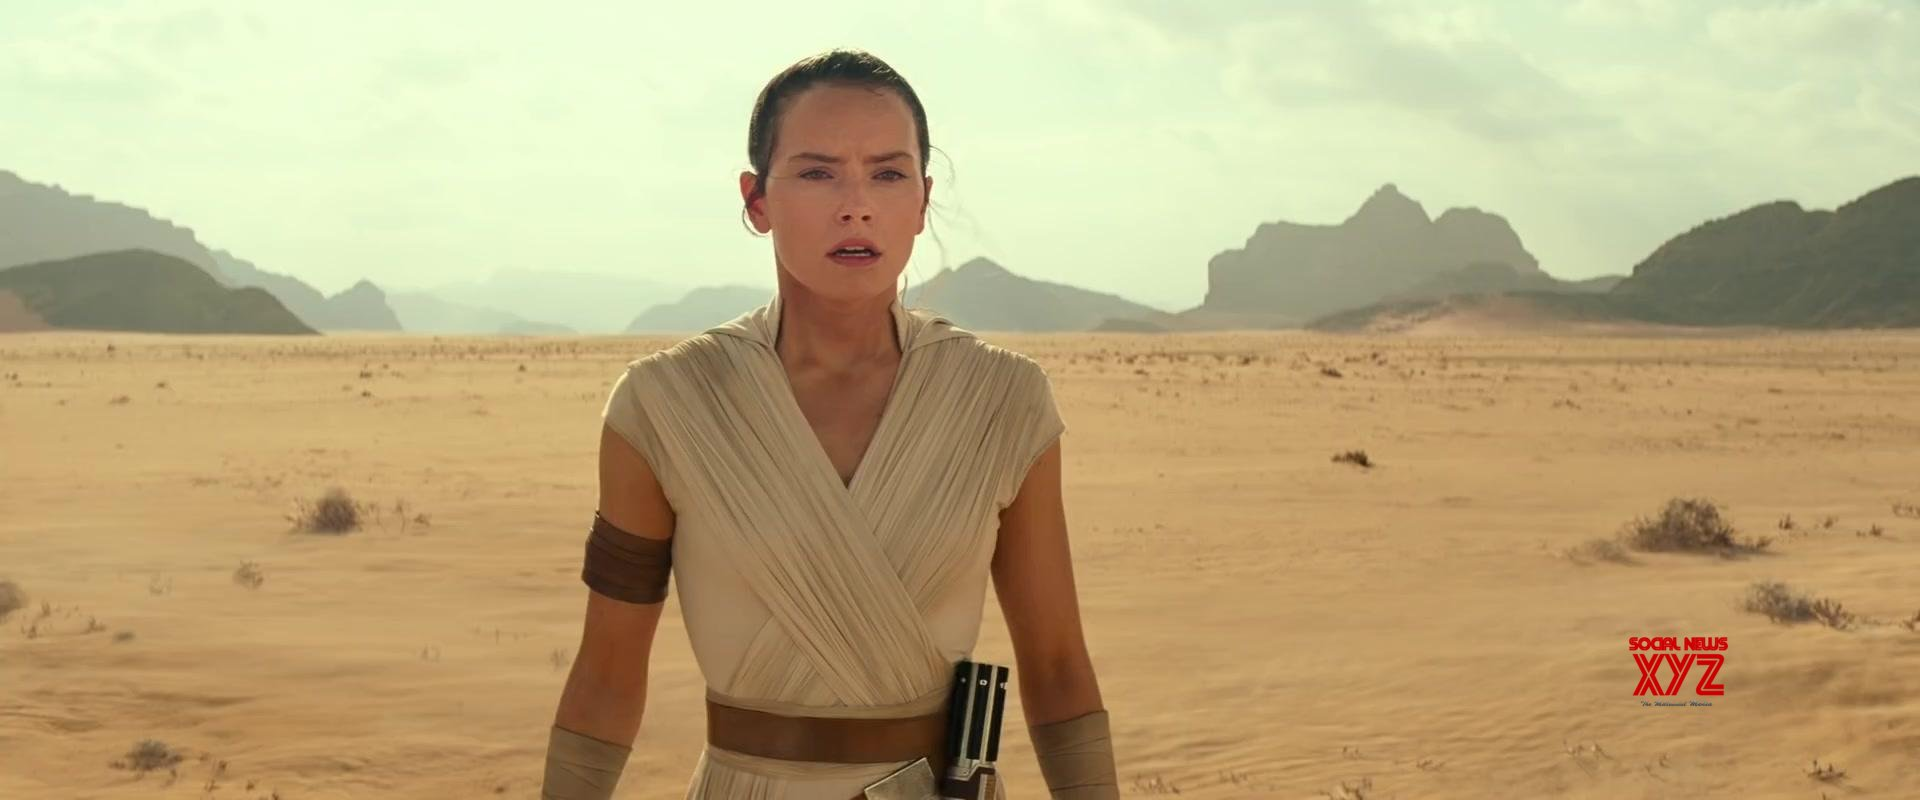 Star Wars: Episode IX Movie Teaser Stills